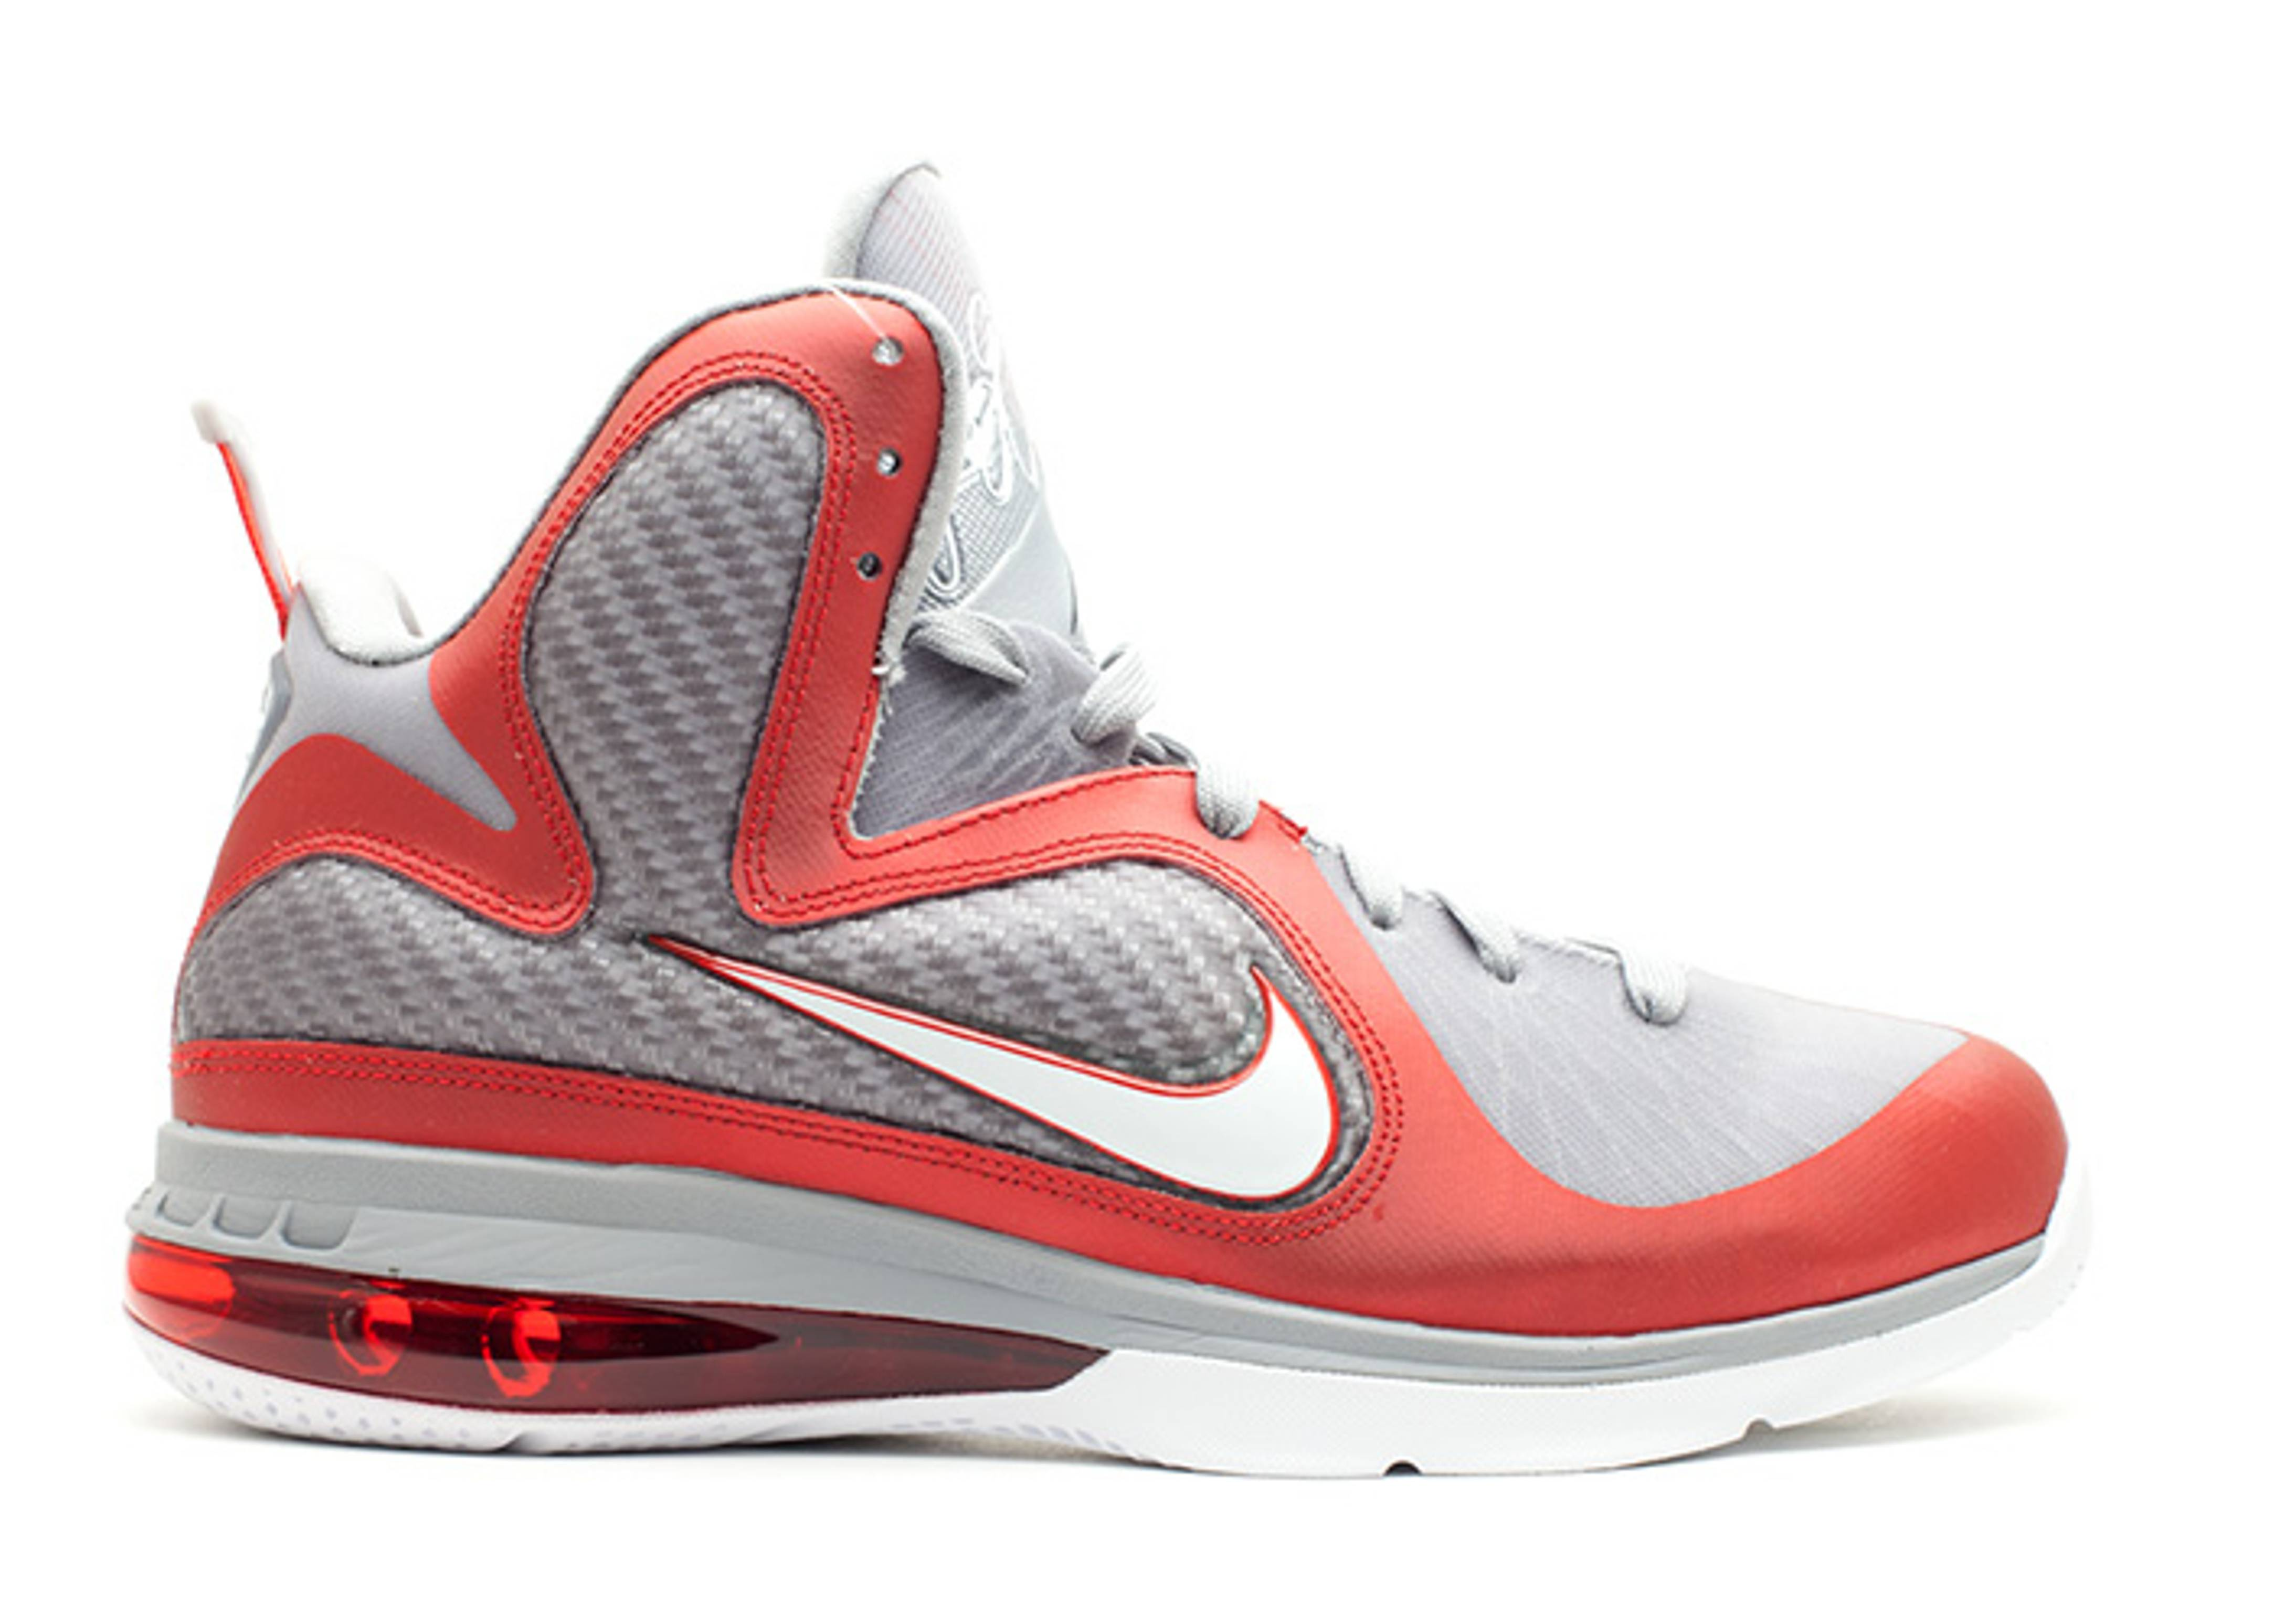 Nike LeBron 9 Ohio State Sneakers (sport red/white-wolf grey)